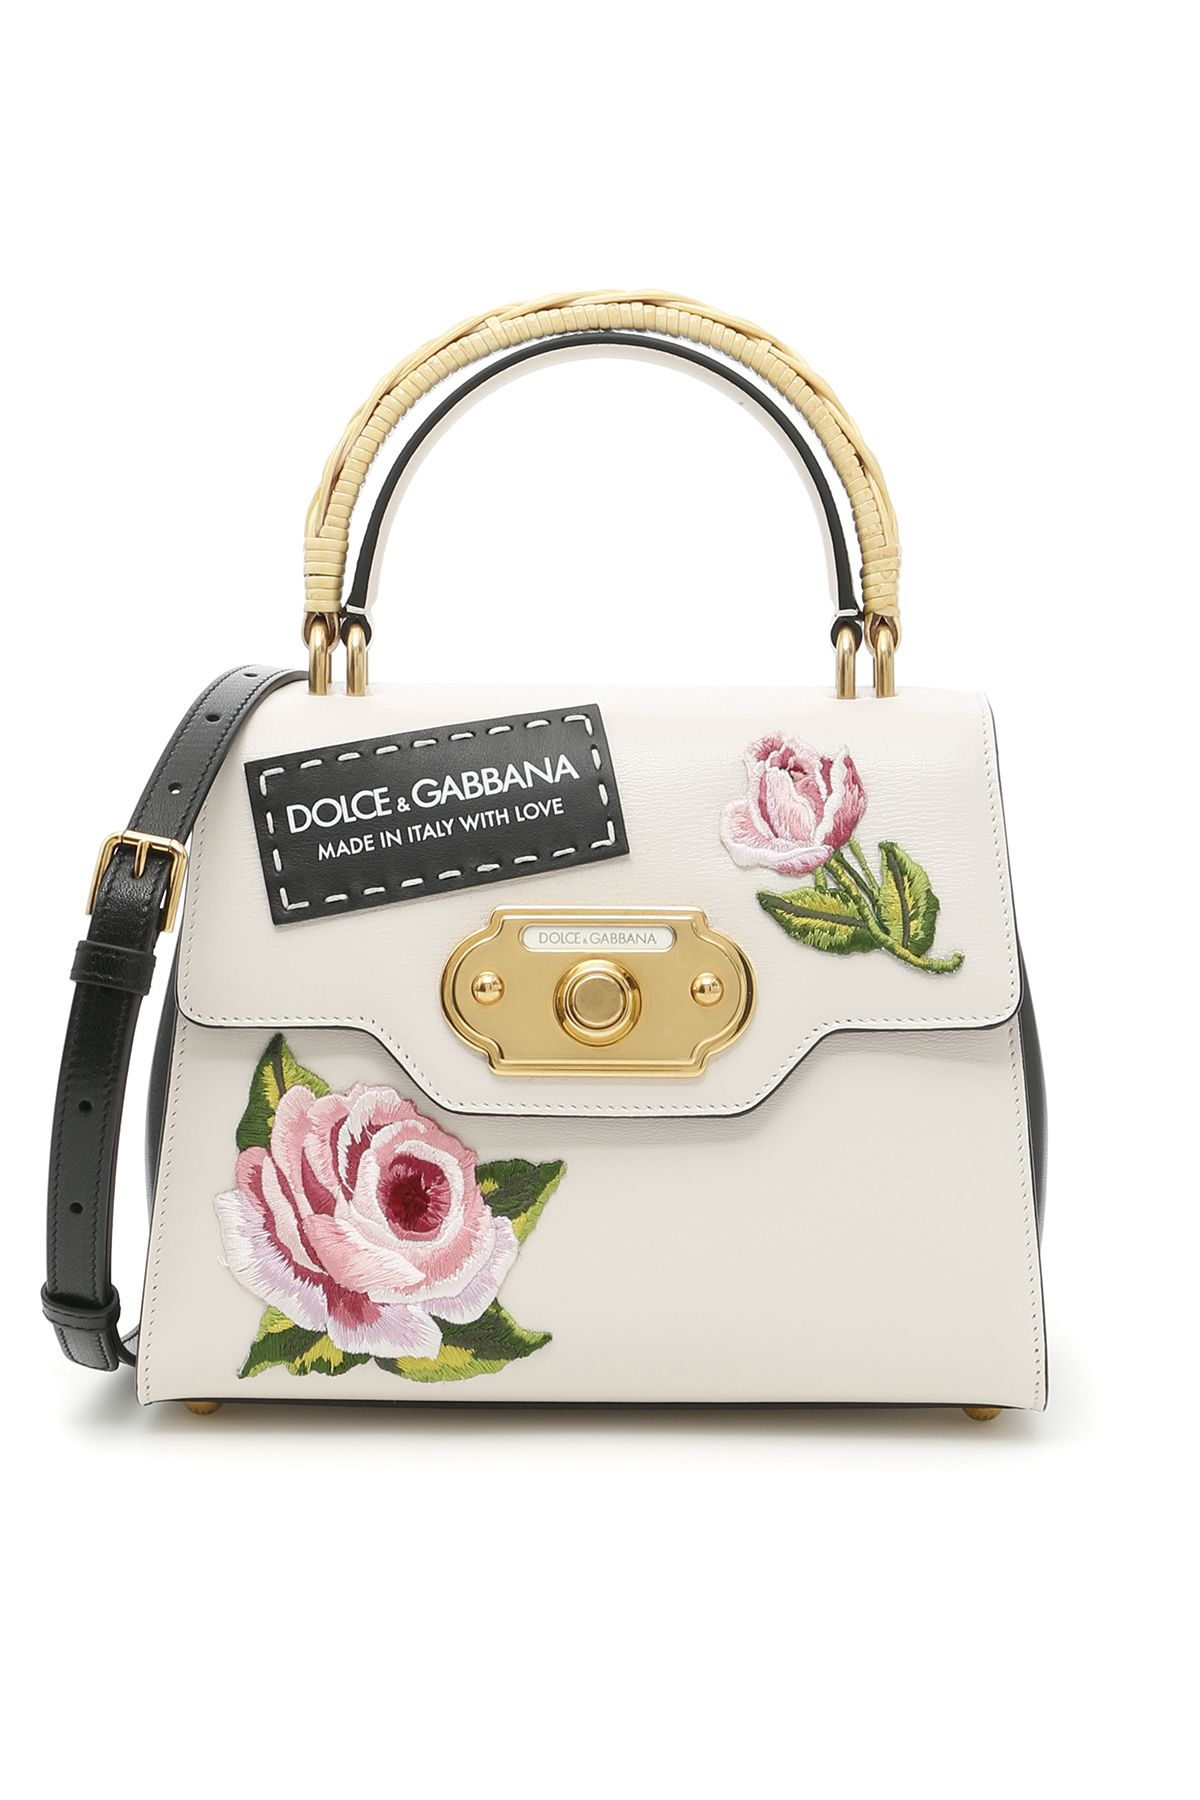 Dolce & Gabbana Welcome handbag 9eFs4L